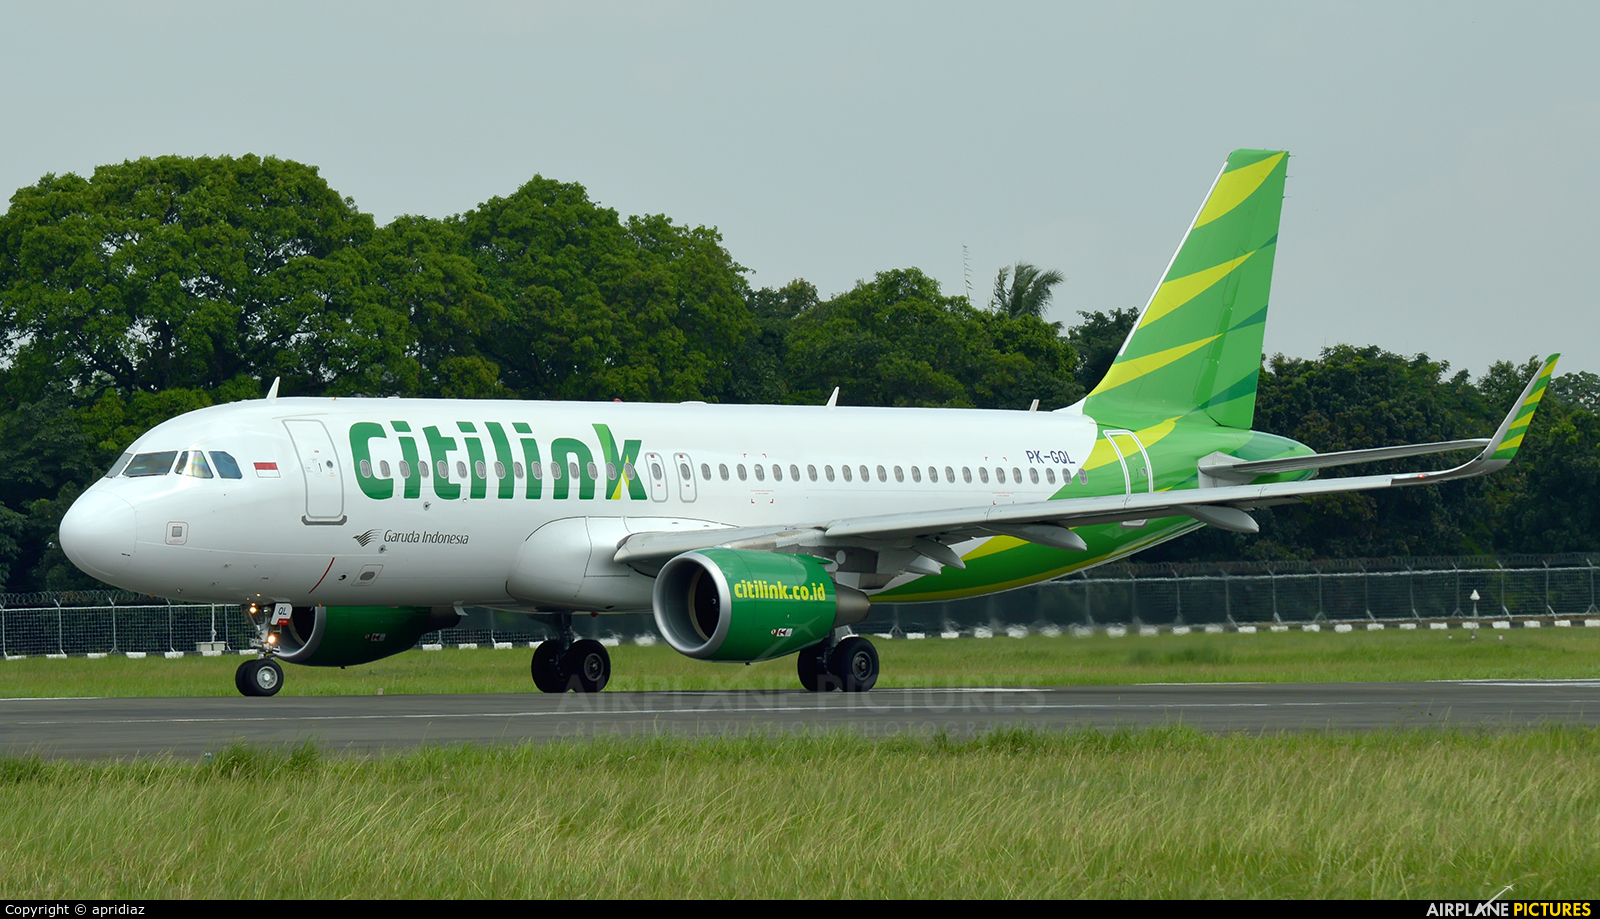 Citilink Airbus A320 | Airplane-Pictures.net